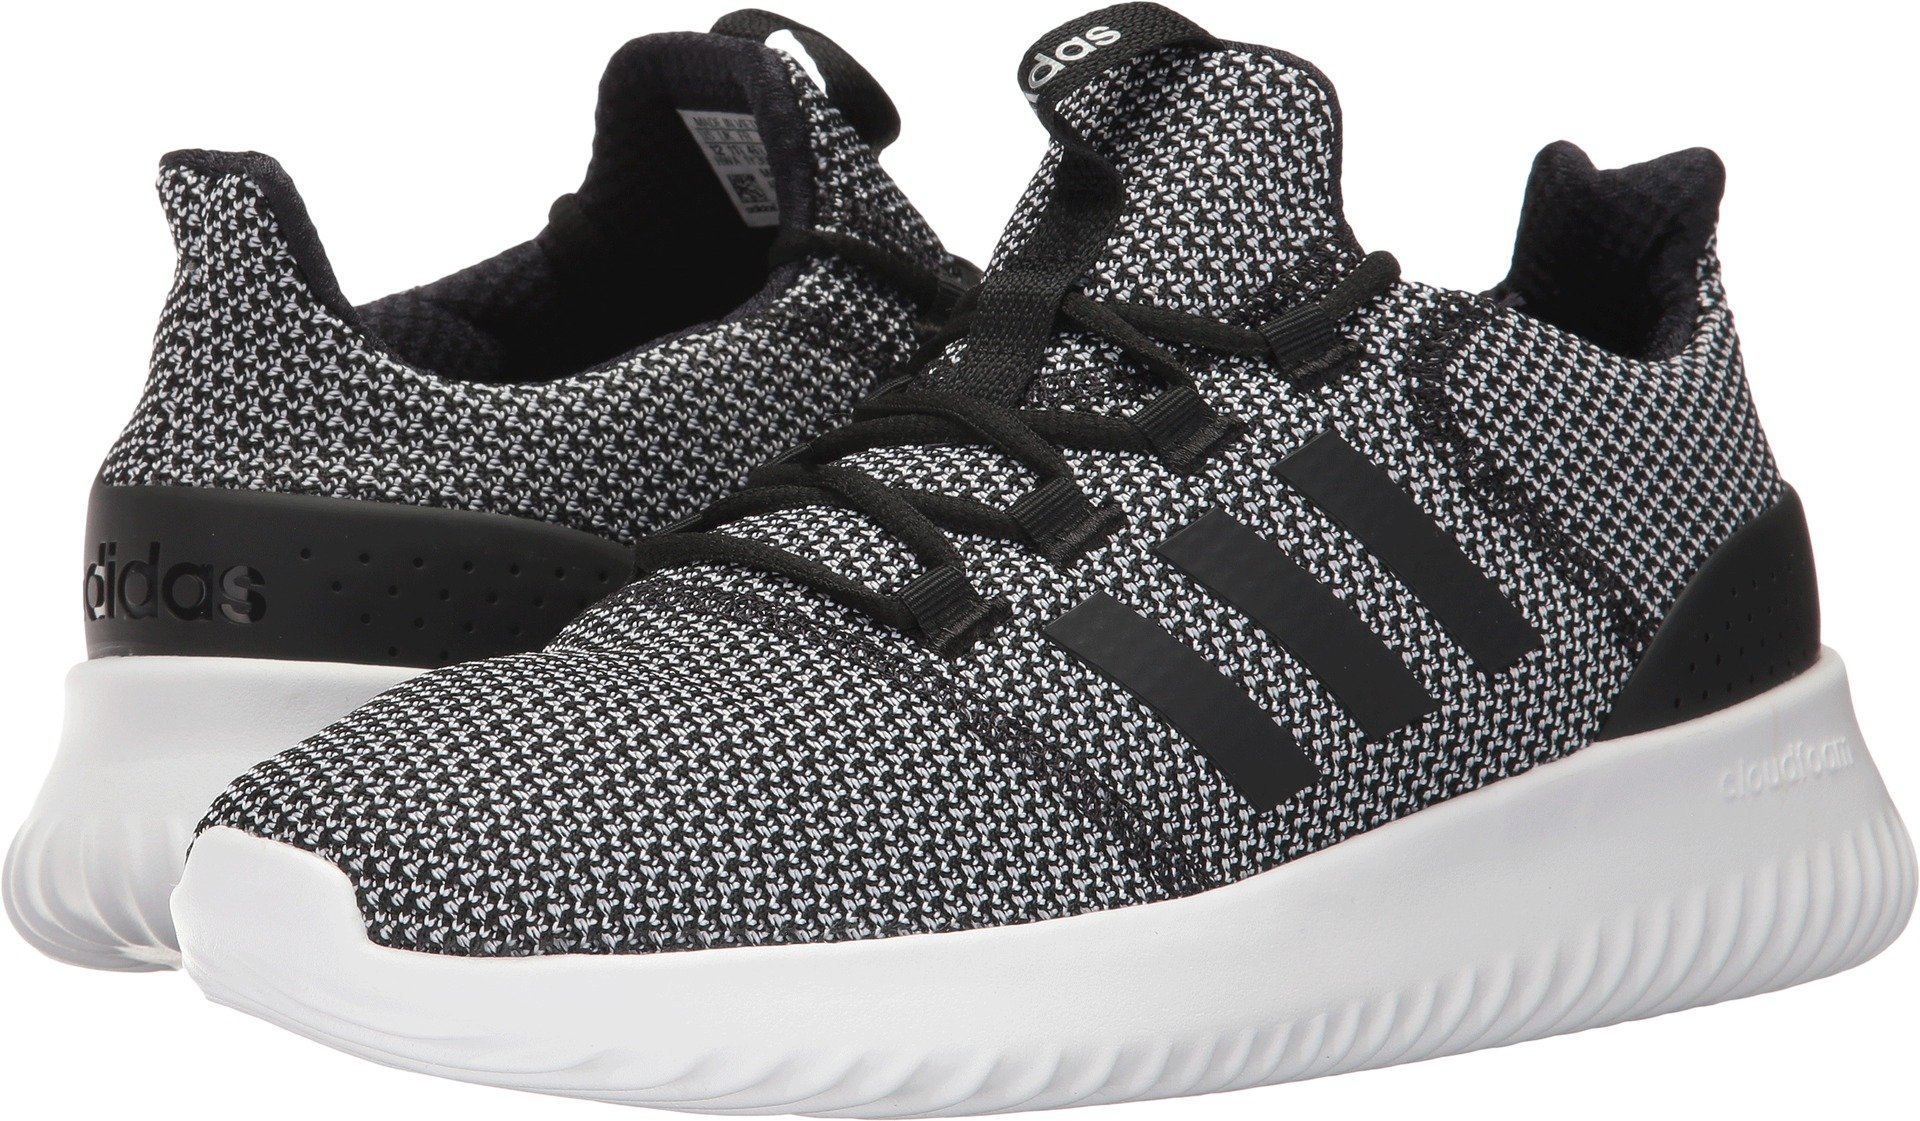 adidas Men's Cloudfoam Ultimate Running Shoe, Black/Black/White, 11 Medium US